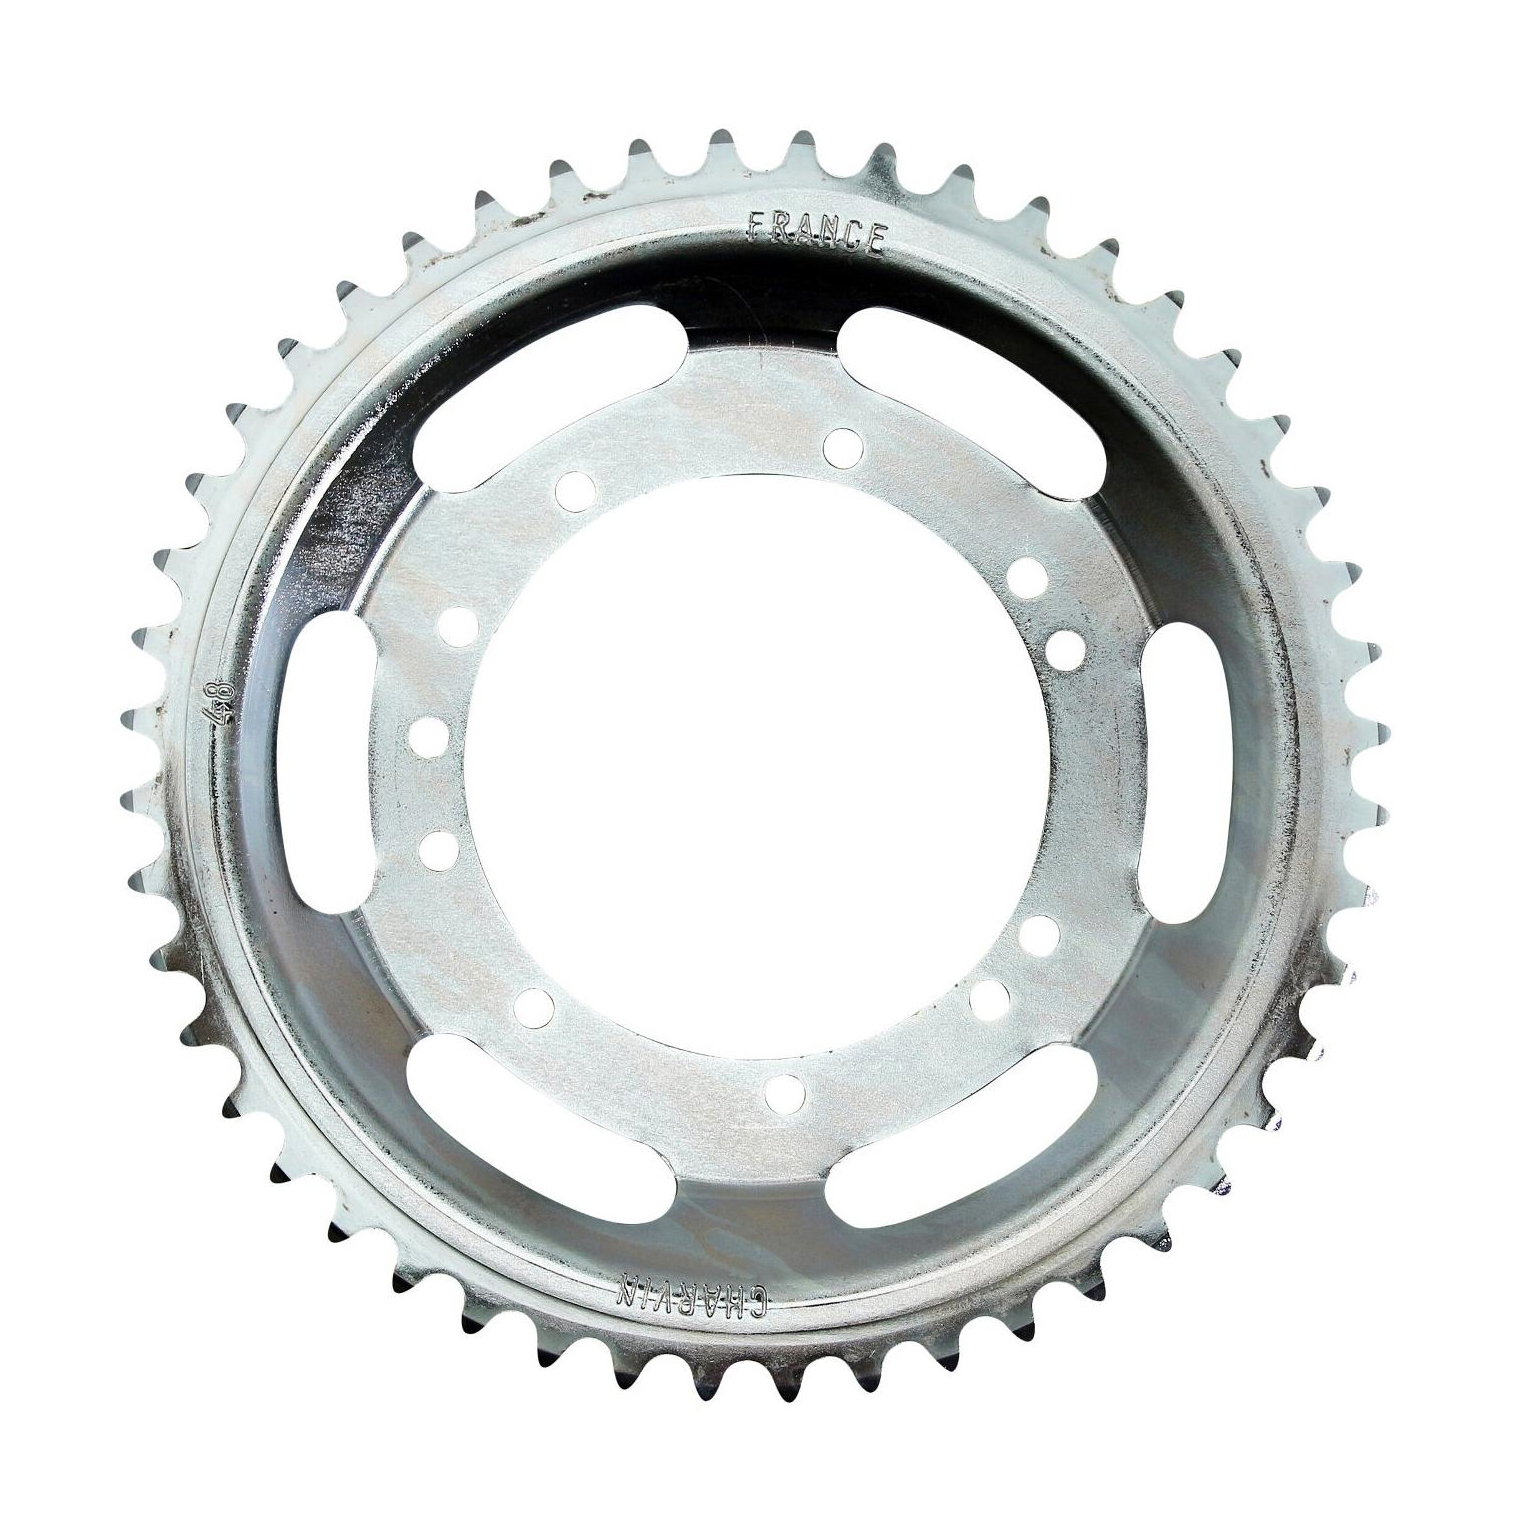 Couronne 1Tek D.94 11 trous Cyclo CHARVIN Peugeot 103 V Rayons - 48